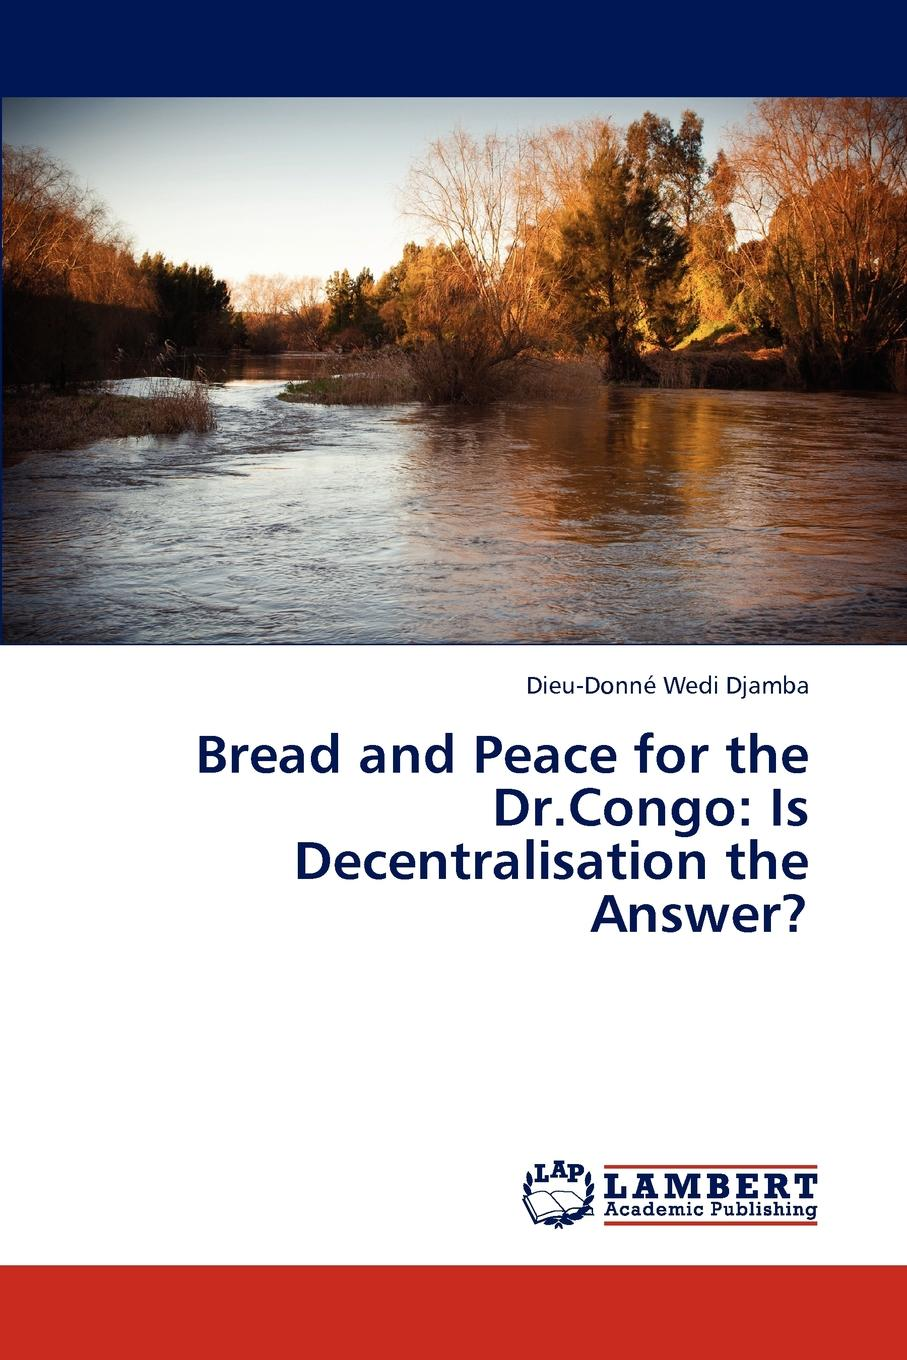 Dieu-Donn Wedi Djamba Bread and Peace for the Dr.Congo. Is Decentralisation Answer.